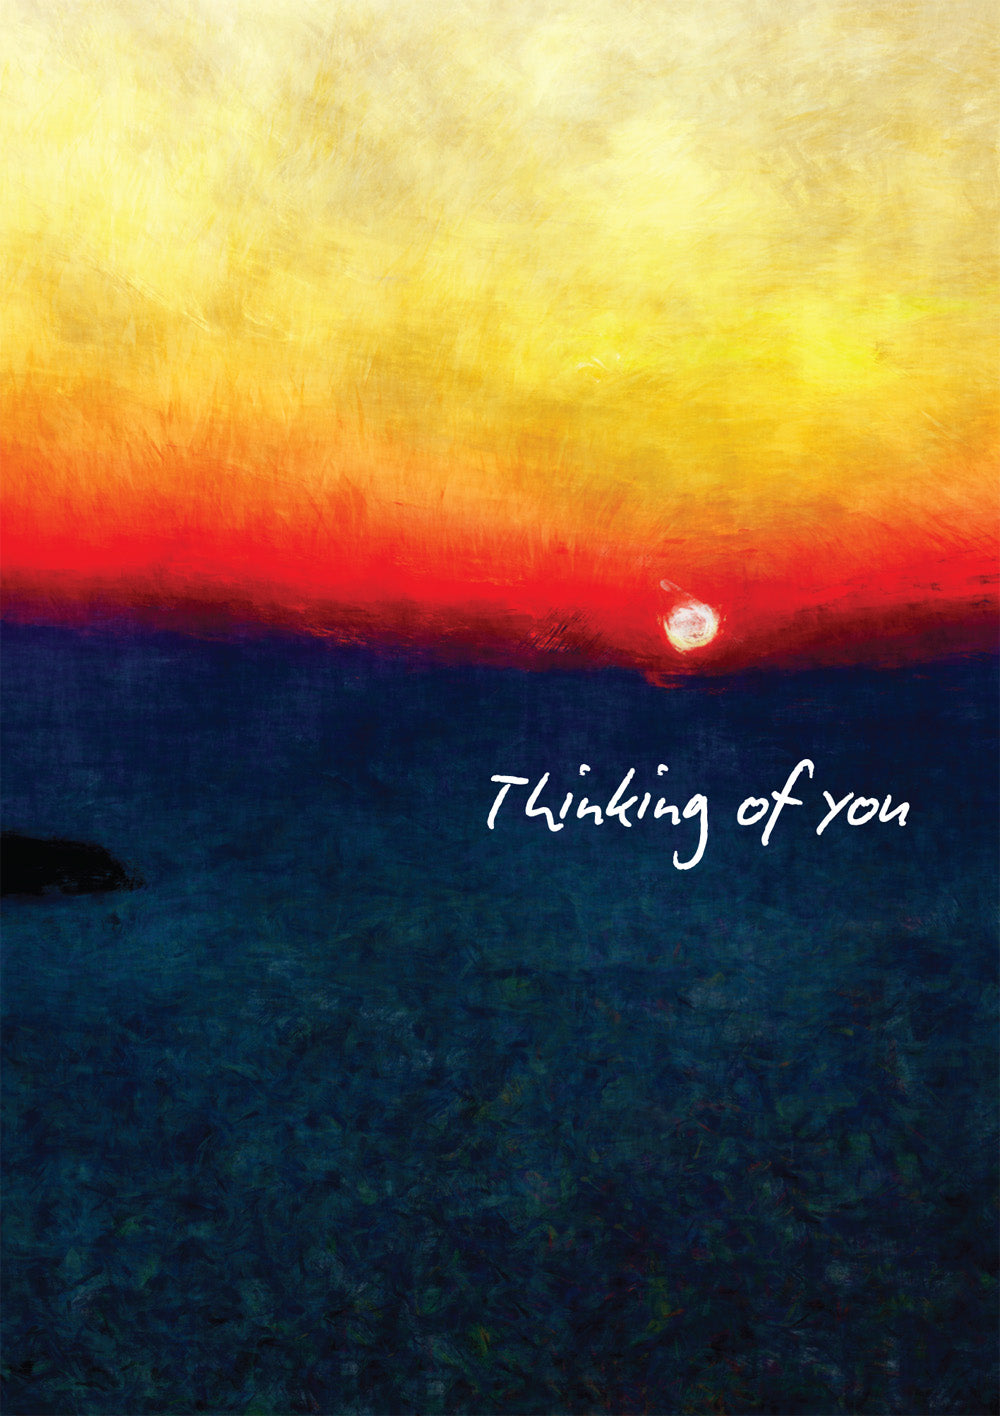 Thinking Of You  - Sun -  Standard CardThinking Of You  - Sun -  Standard Card